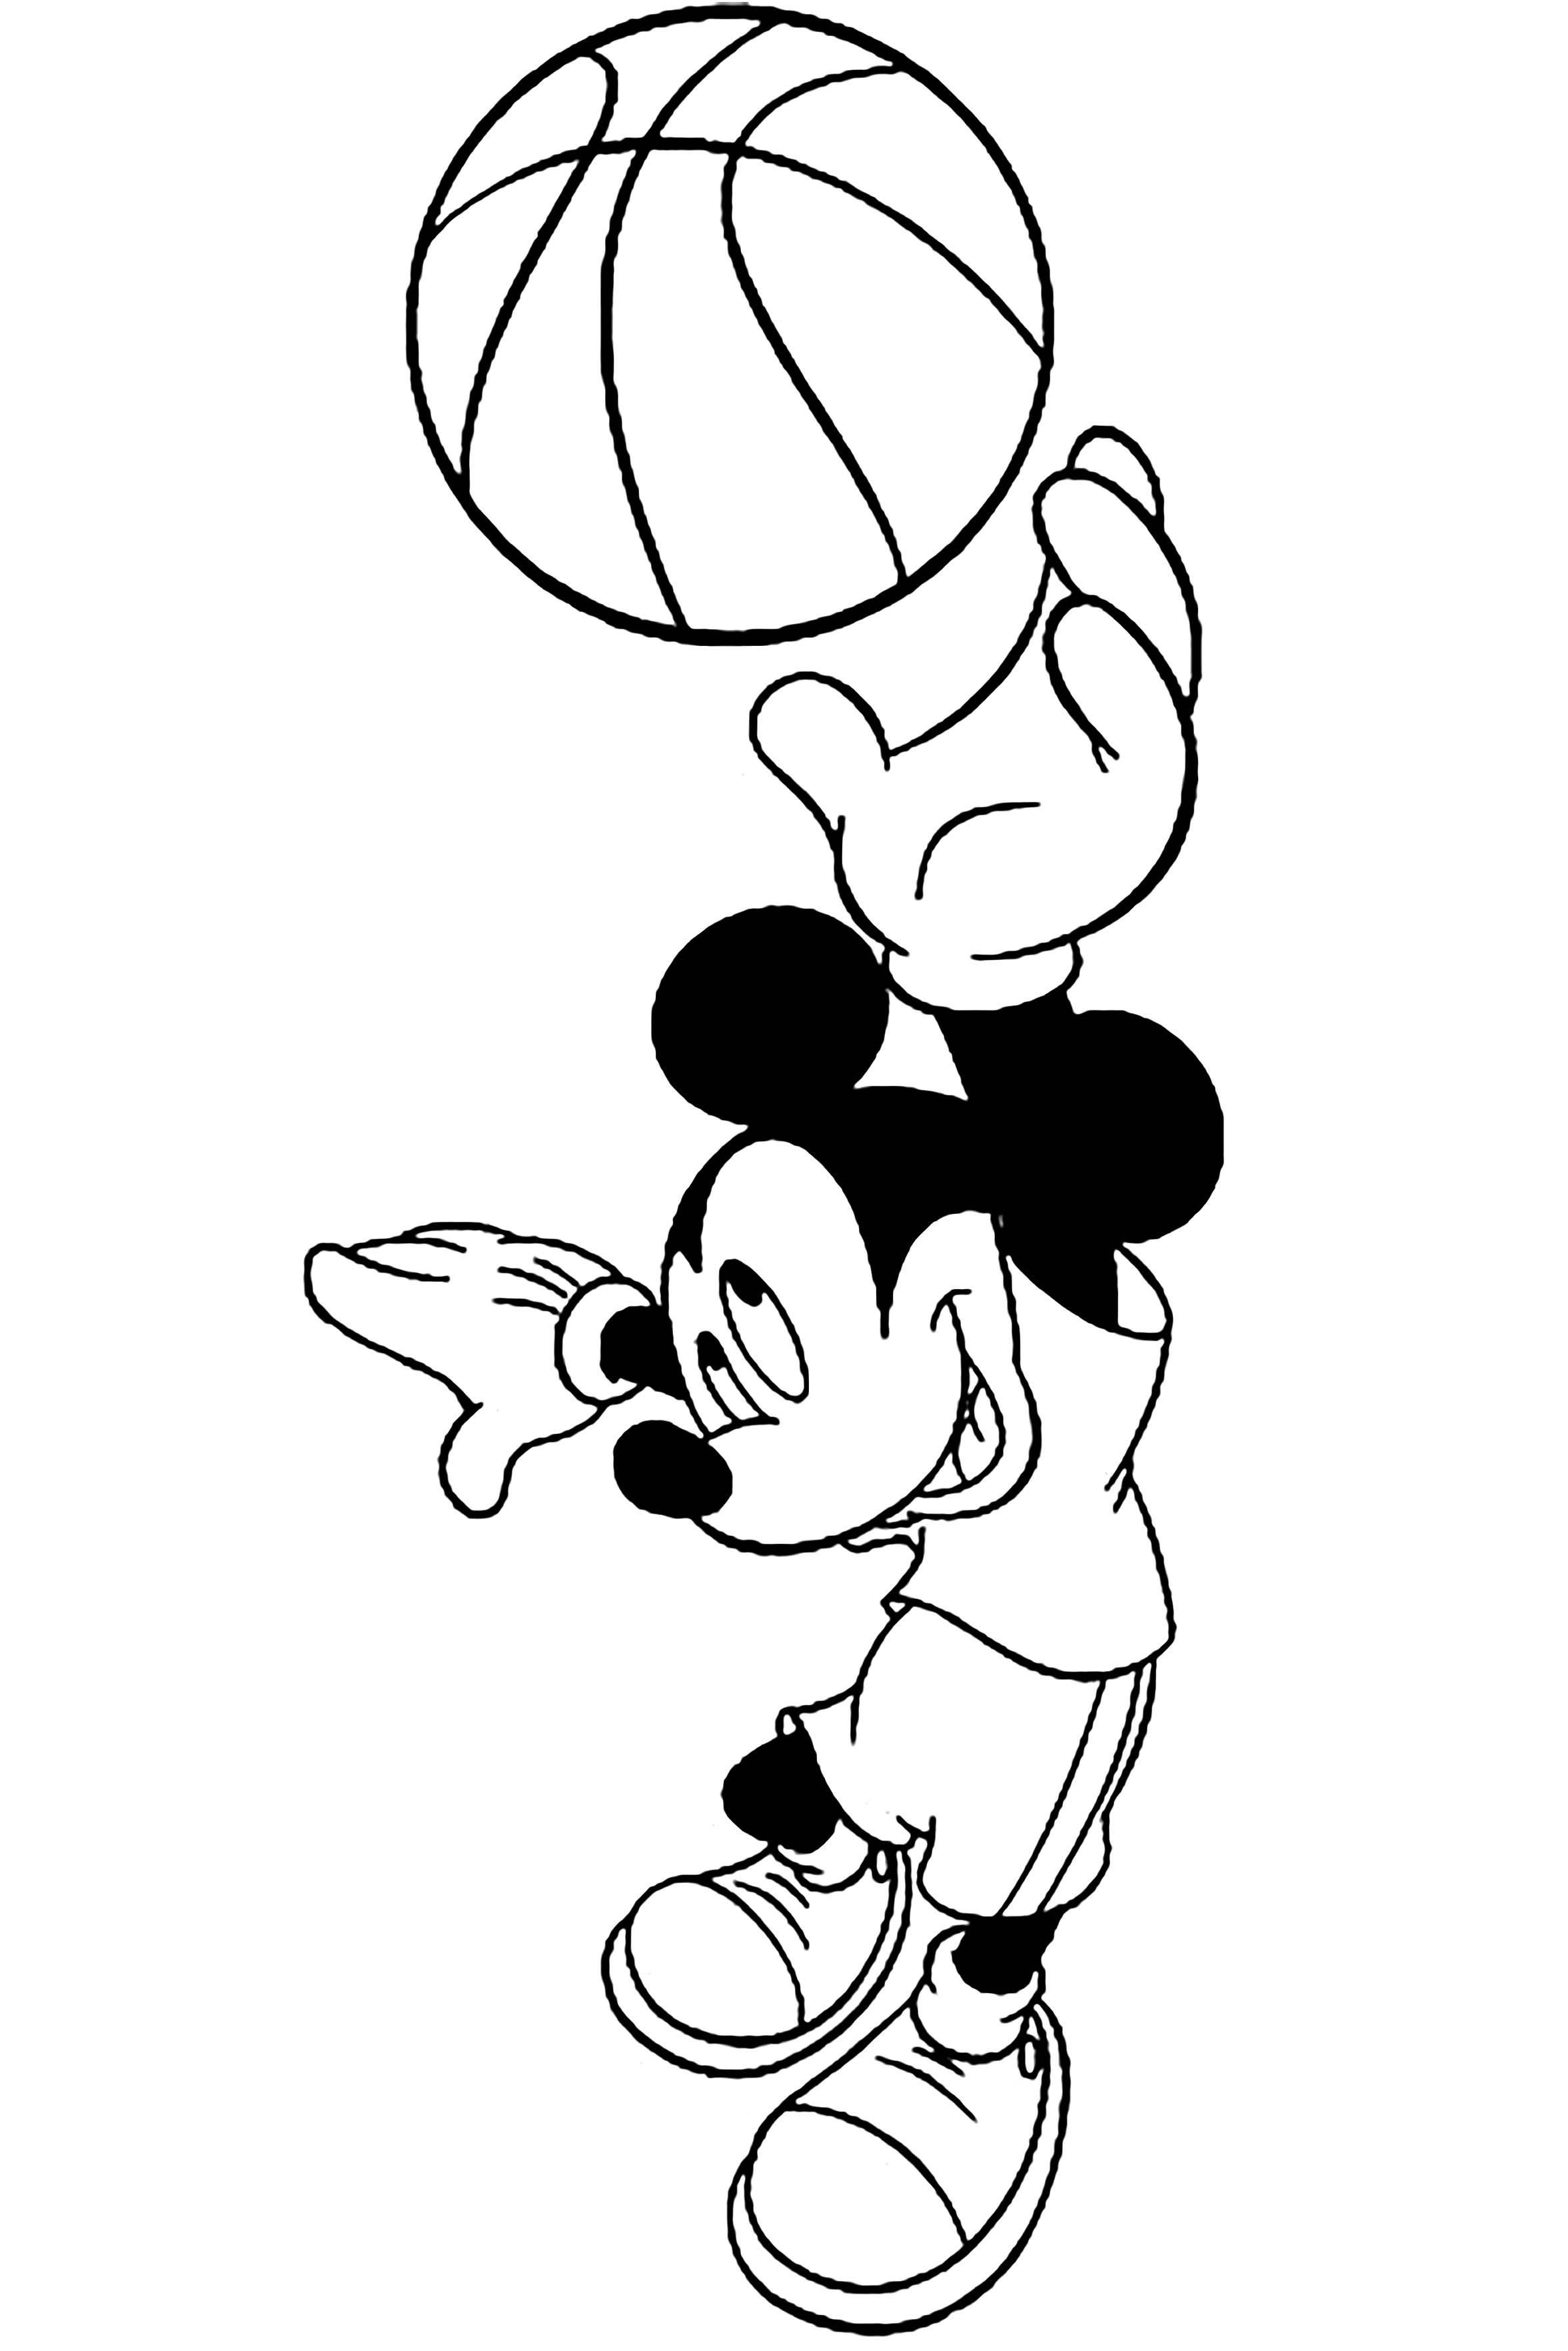 coloring pictures basketball get this basketball coloring pages free printable 606708 coloring pictures basketball